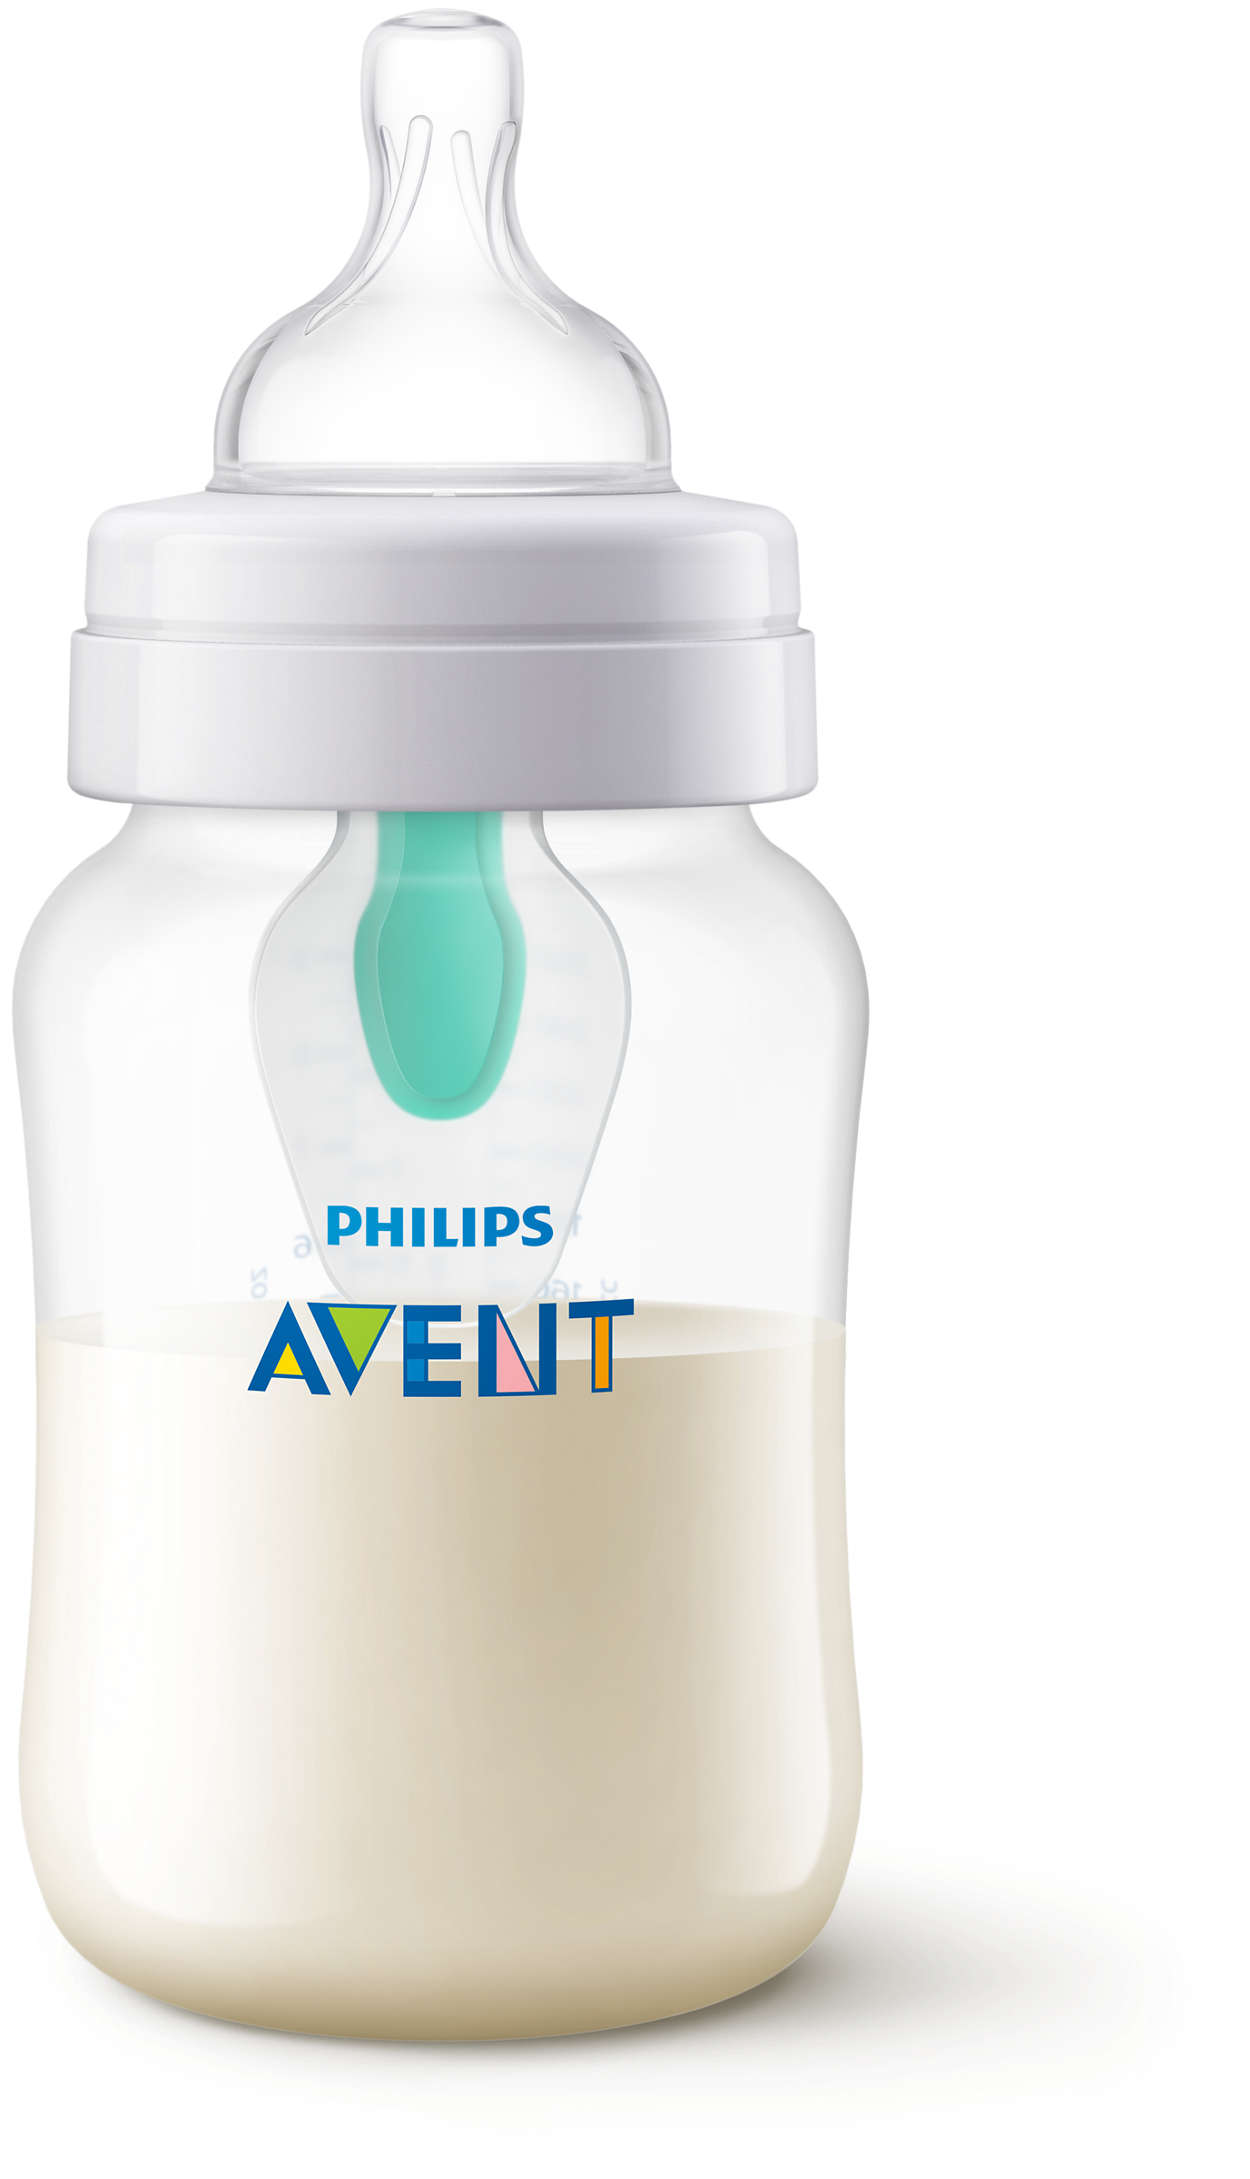 Designed to reduce colic, gas and reflux*